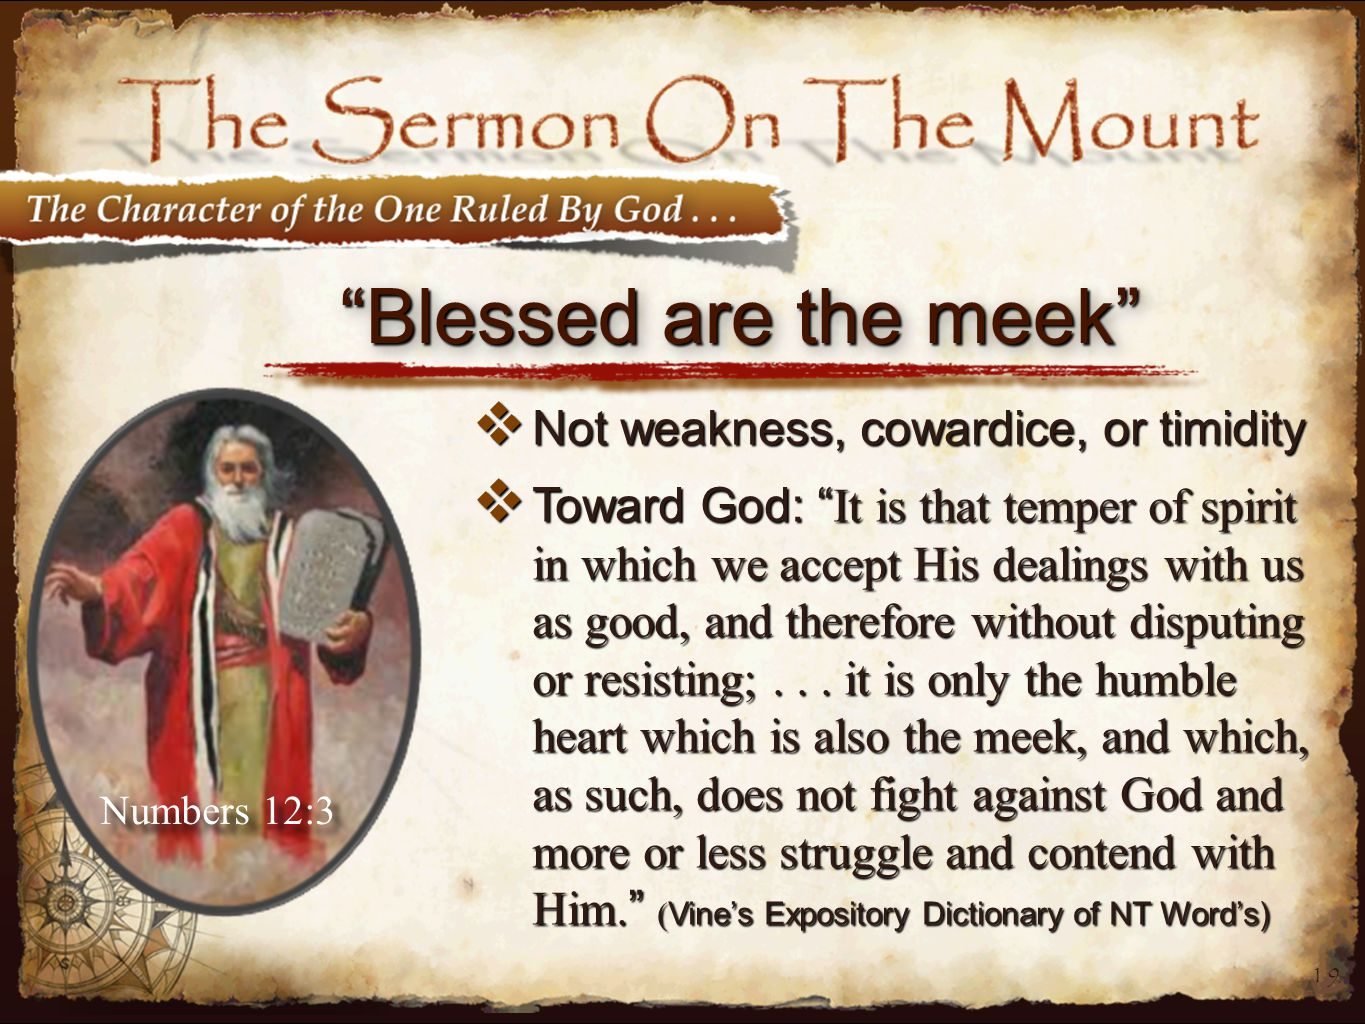 19 Blessed are the meek  Not weakness, cowardice, or timidity  Toward God: It is that temper of spirit in which we accept His dealings with us as good, and therefore without disputing or resisting;...